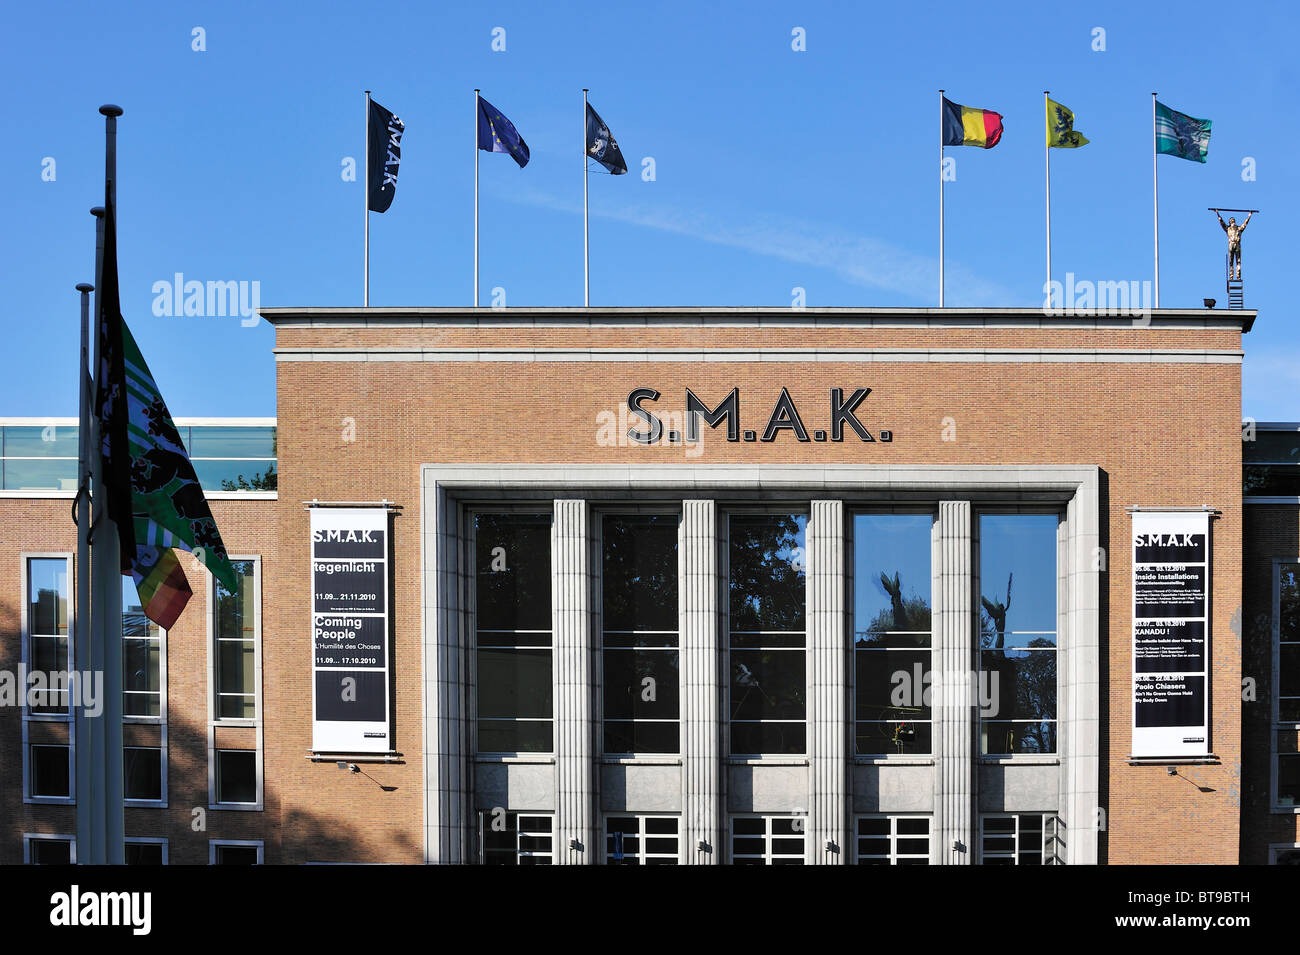 SMAK, the Municipal Museum of Contemporary Art at Ghent, Belgium - Stock Image